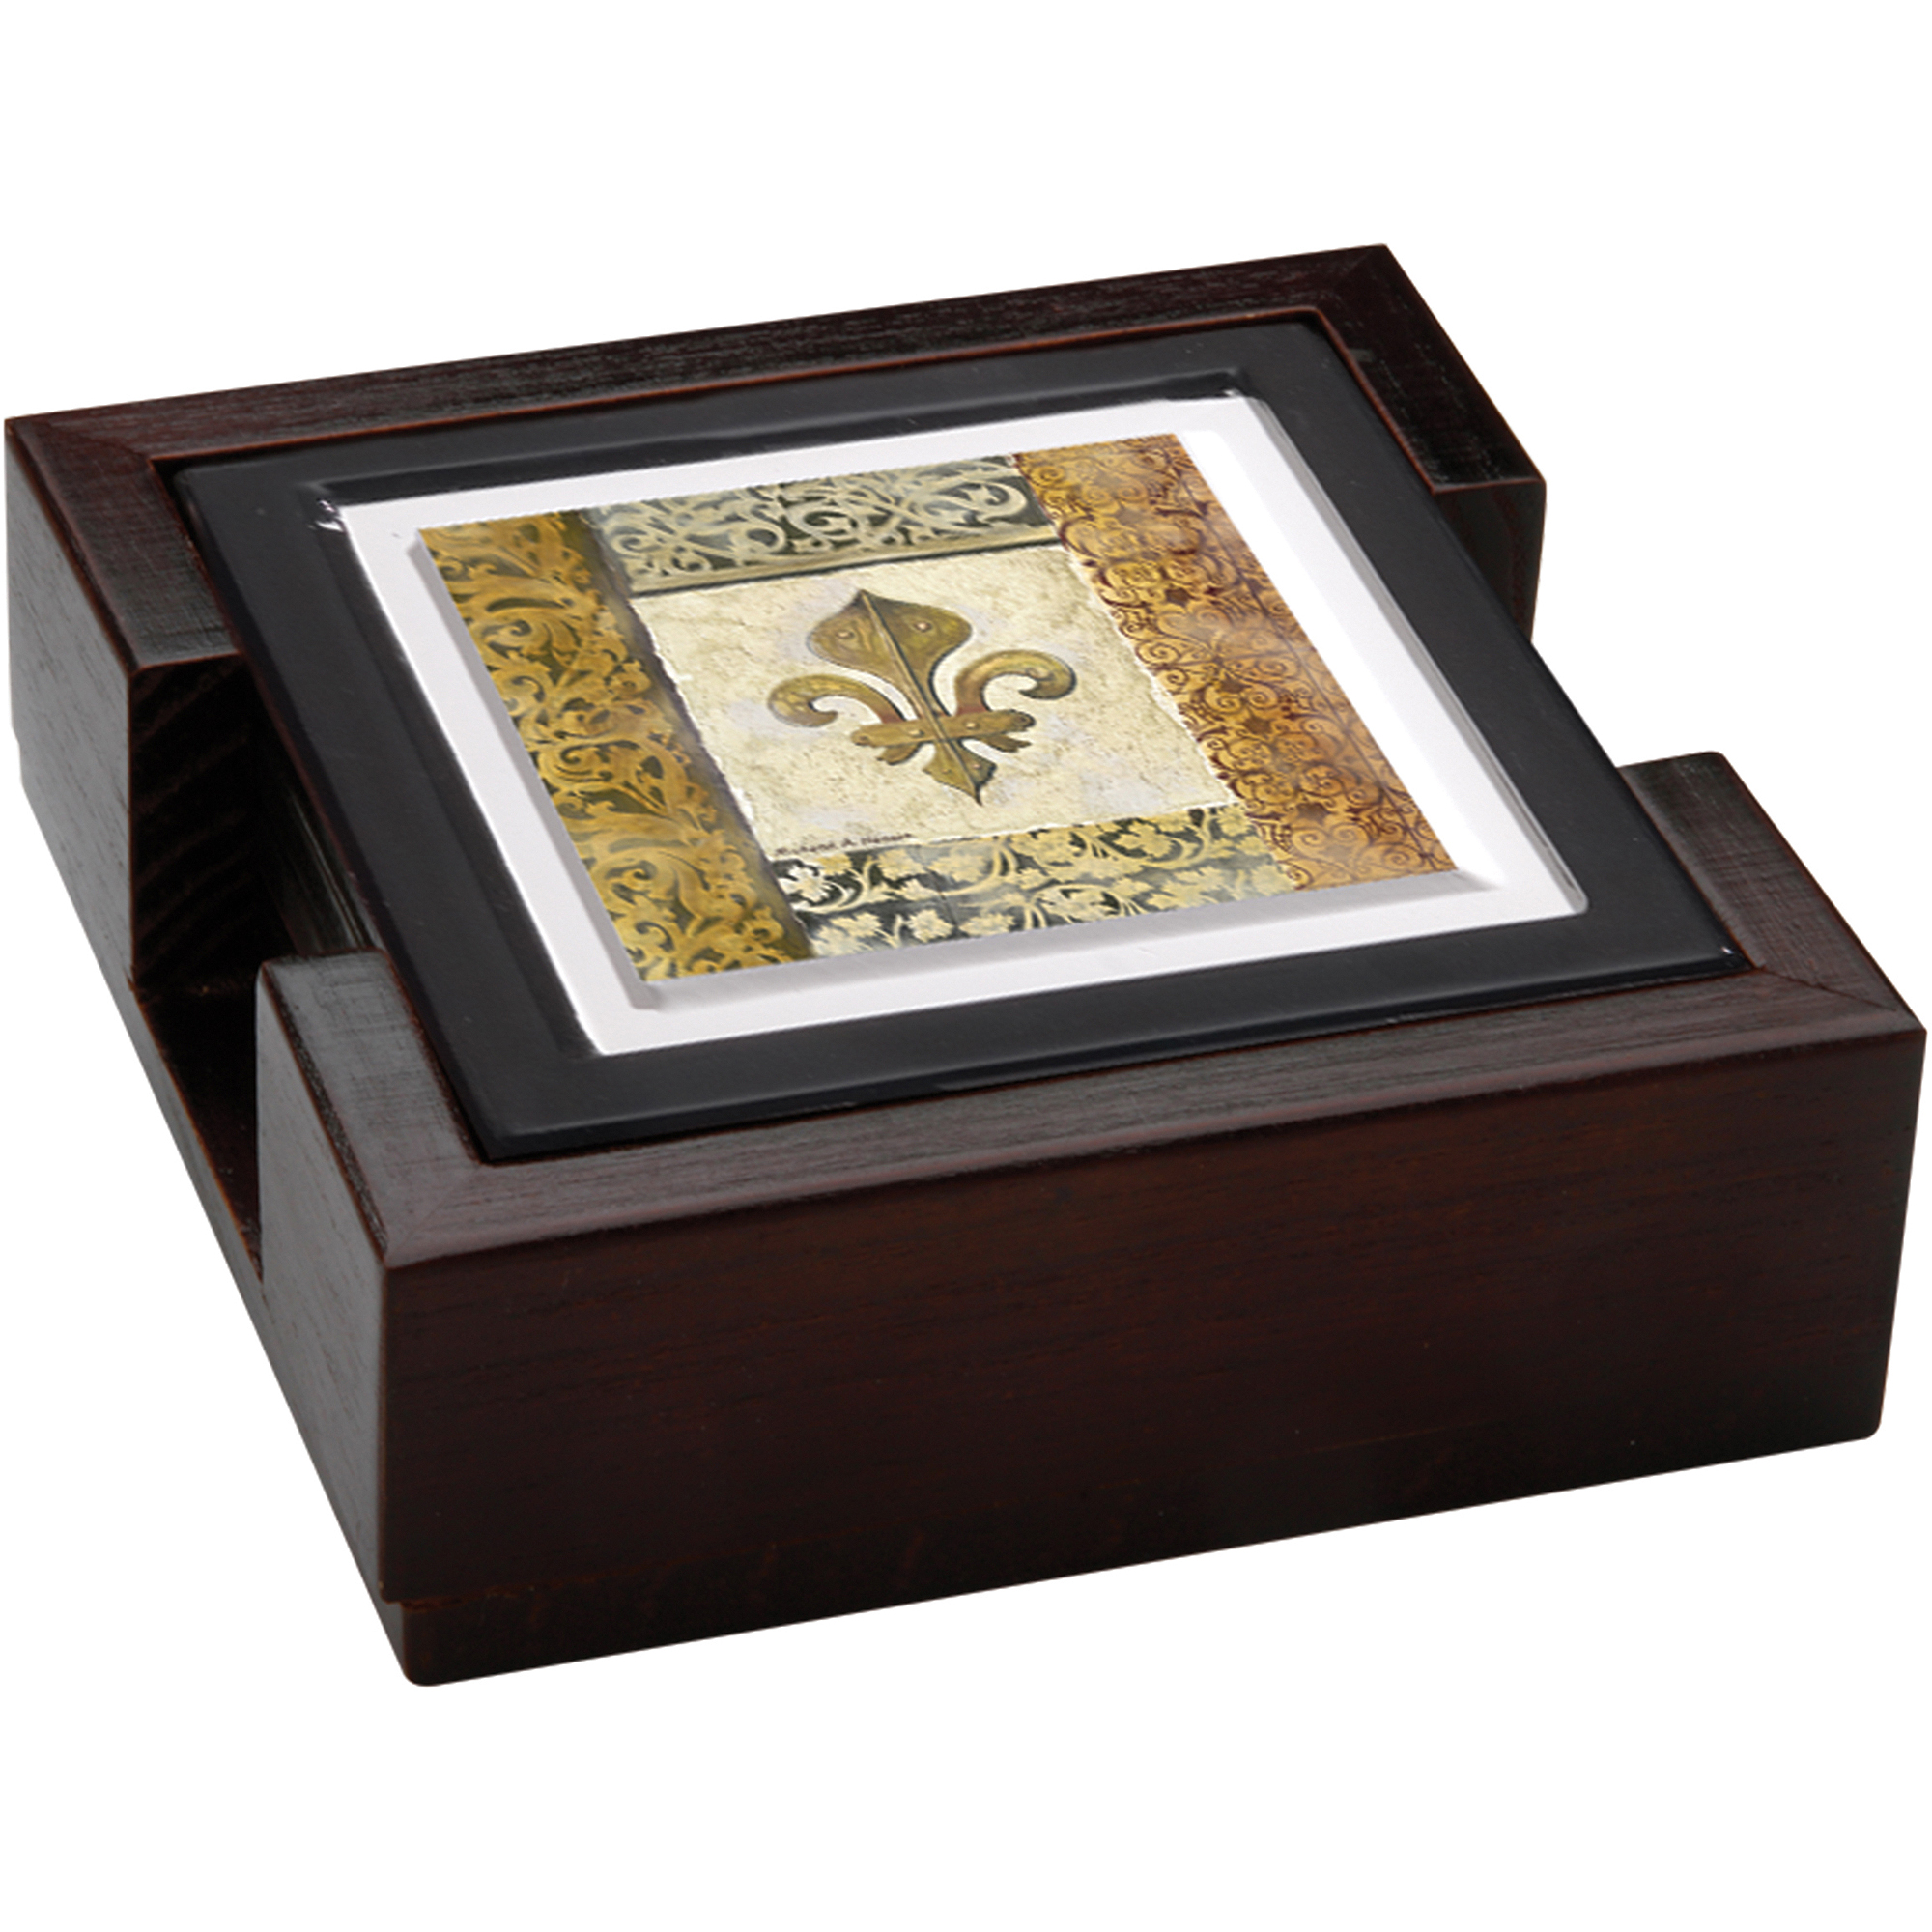 Thirstystone Ambiance Gift Set, Fleur de Lis Element